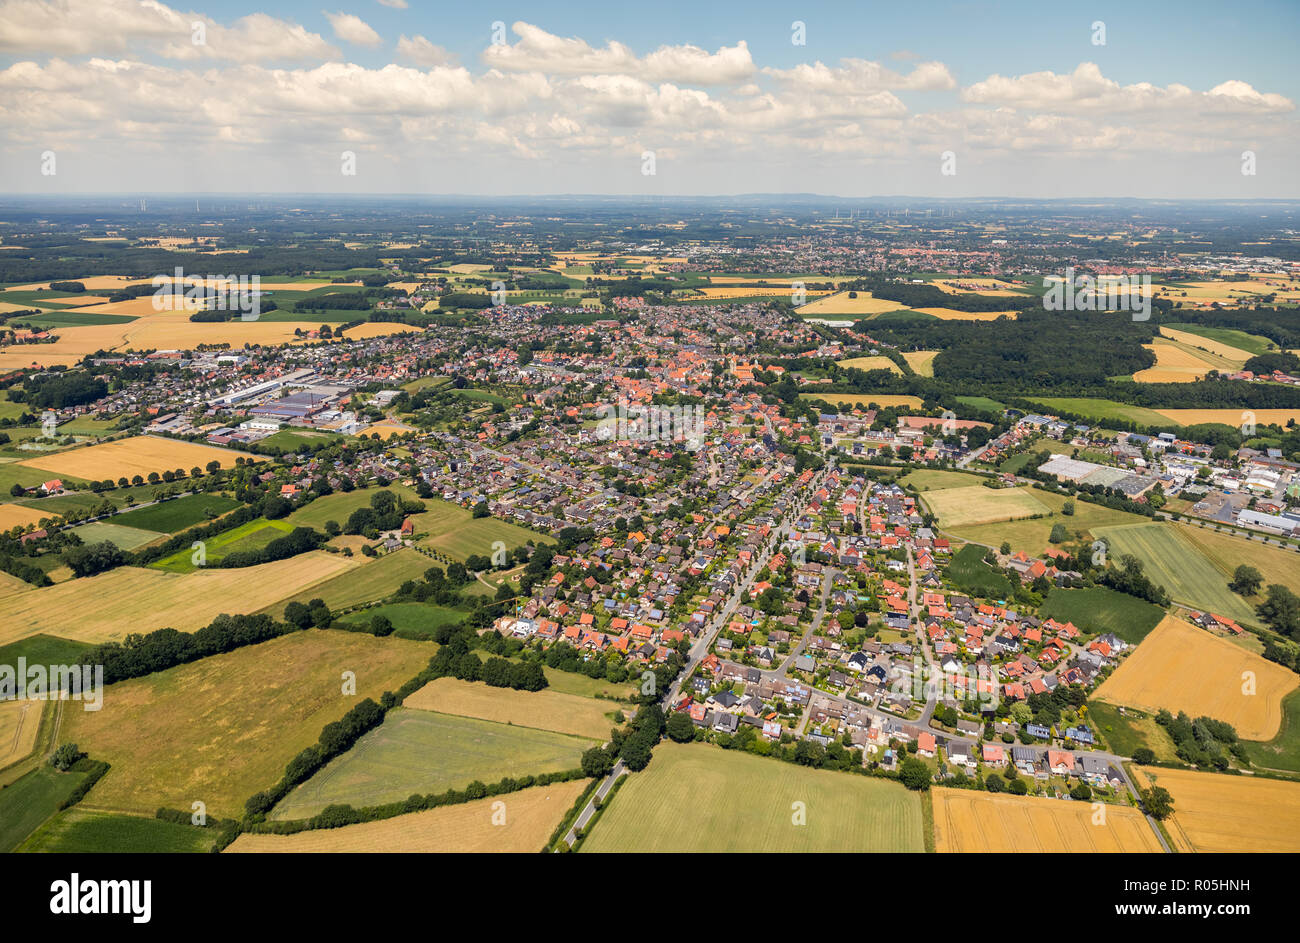 Aerial view, overview Freckenhorst, commercial park Freckenhorst, Martin Sieg fire and burglar alarm technology, Warendorf, Münsterland, North Rhine-W - Stock Image